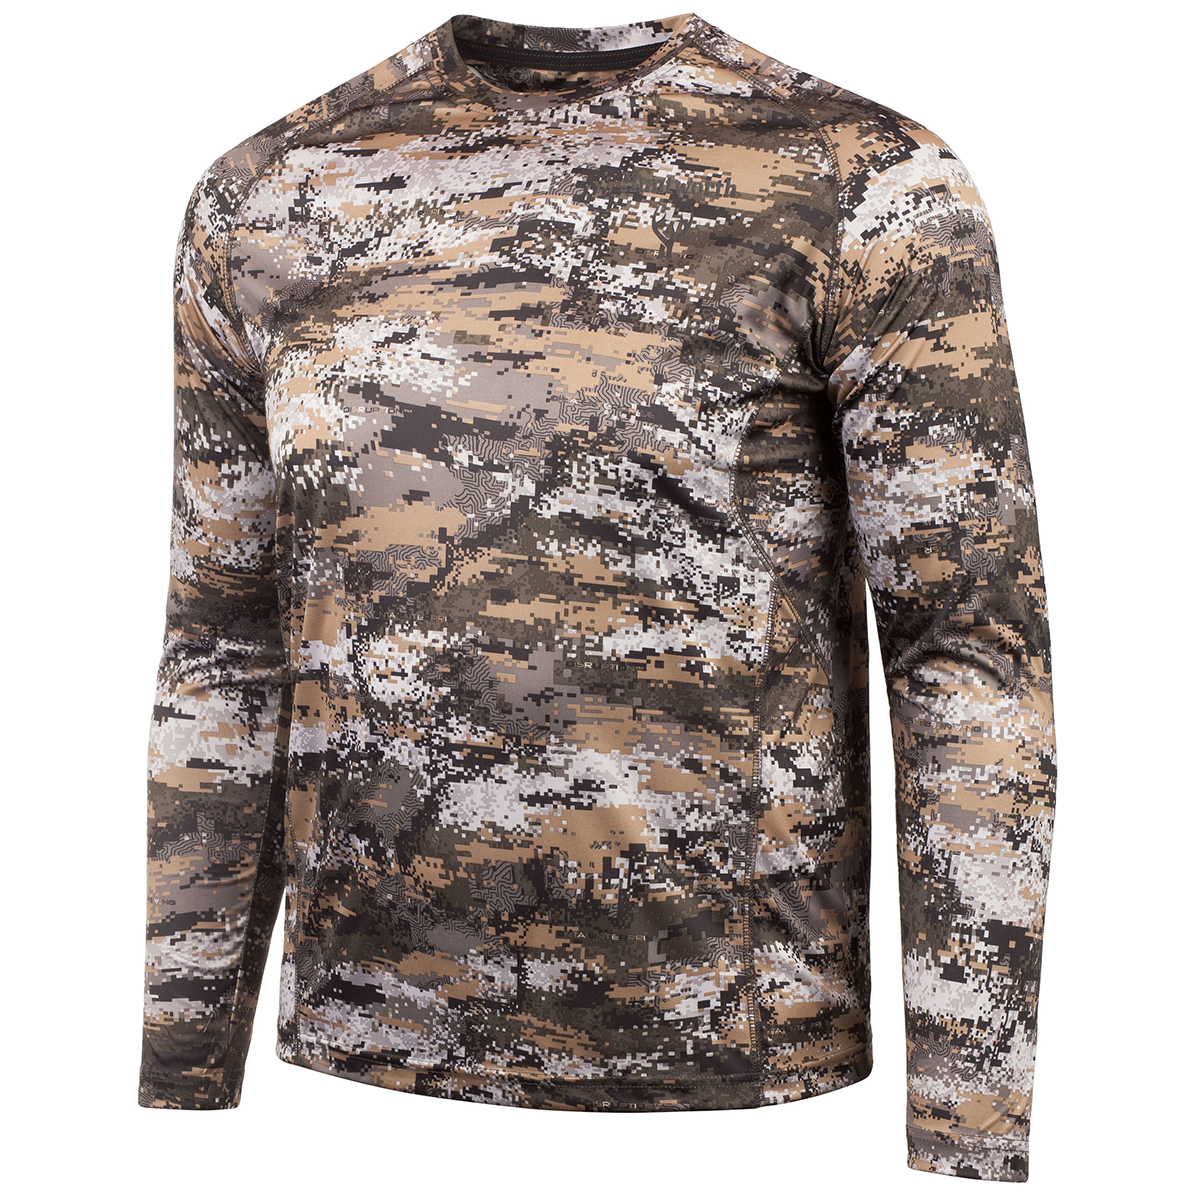 Huntworth Men's Long-Sleeve Hunting Shirt, Disruption Camo